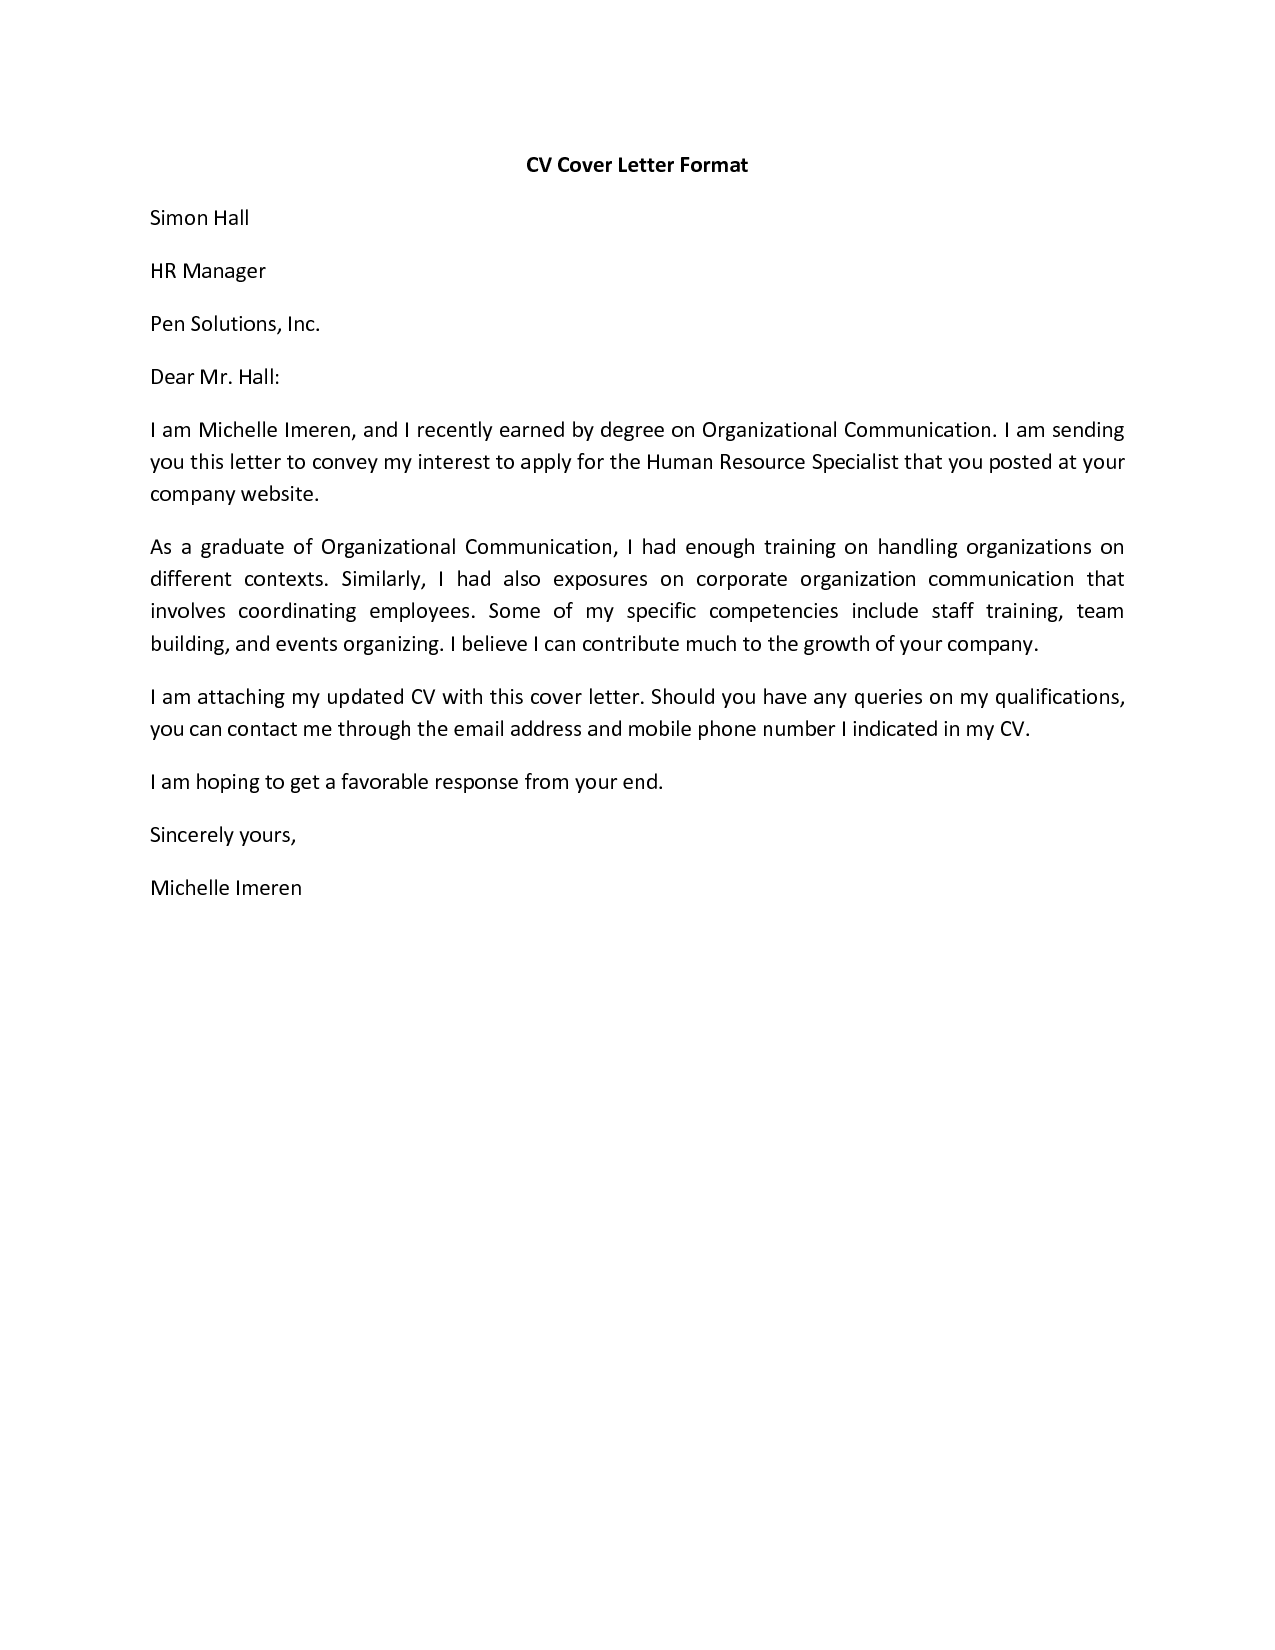 Cover letter for resume rich image and wallpaper for Cv stands for cover letter